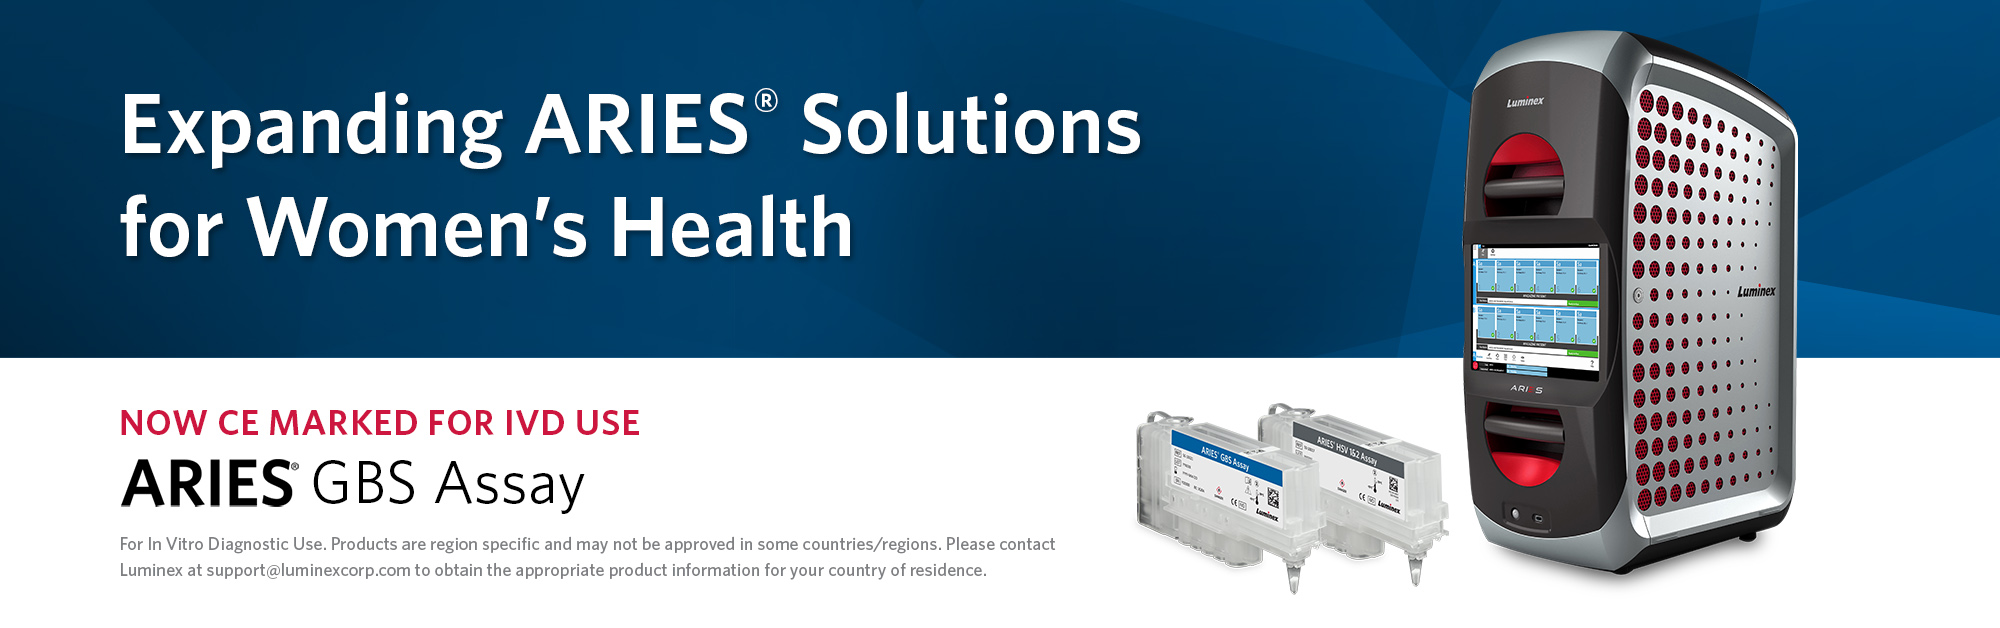 Expanding ARIES® Solutions for Women's Health - ARIES® GBS Assay is Now CE-IVD Marked